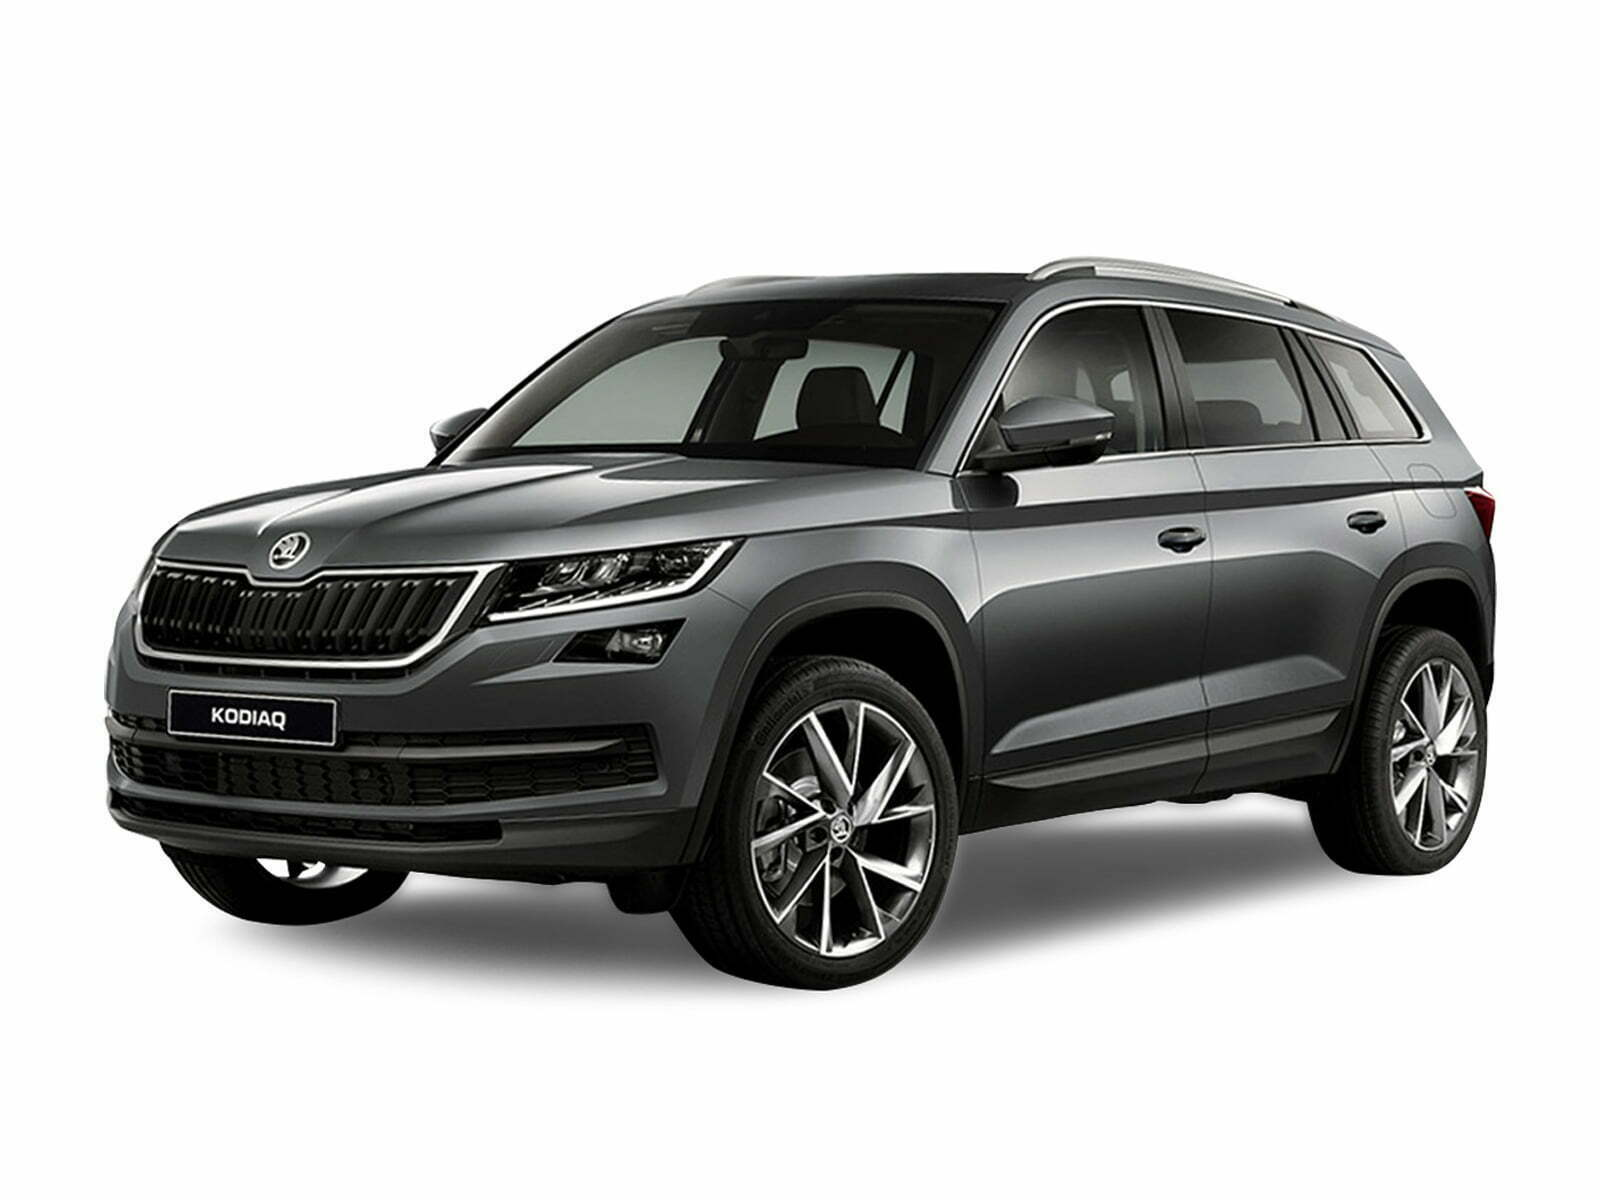 skoda kodiaq leasen nu extra voordelig bij leaseroute. Black Bedroom Furniture Sets. Home Design Ideas